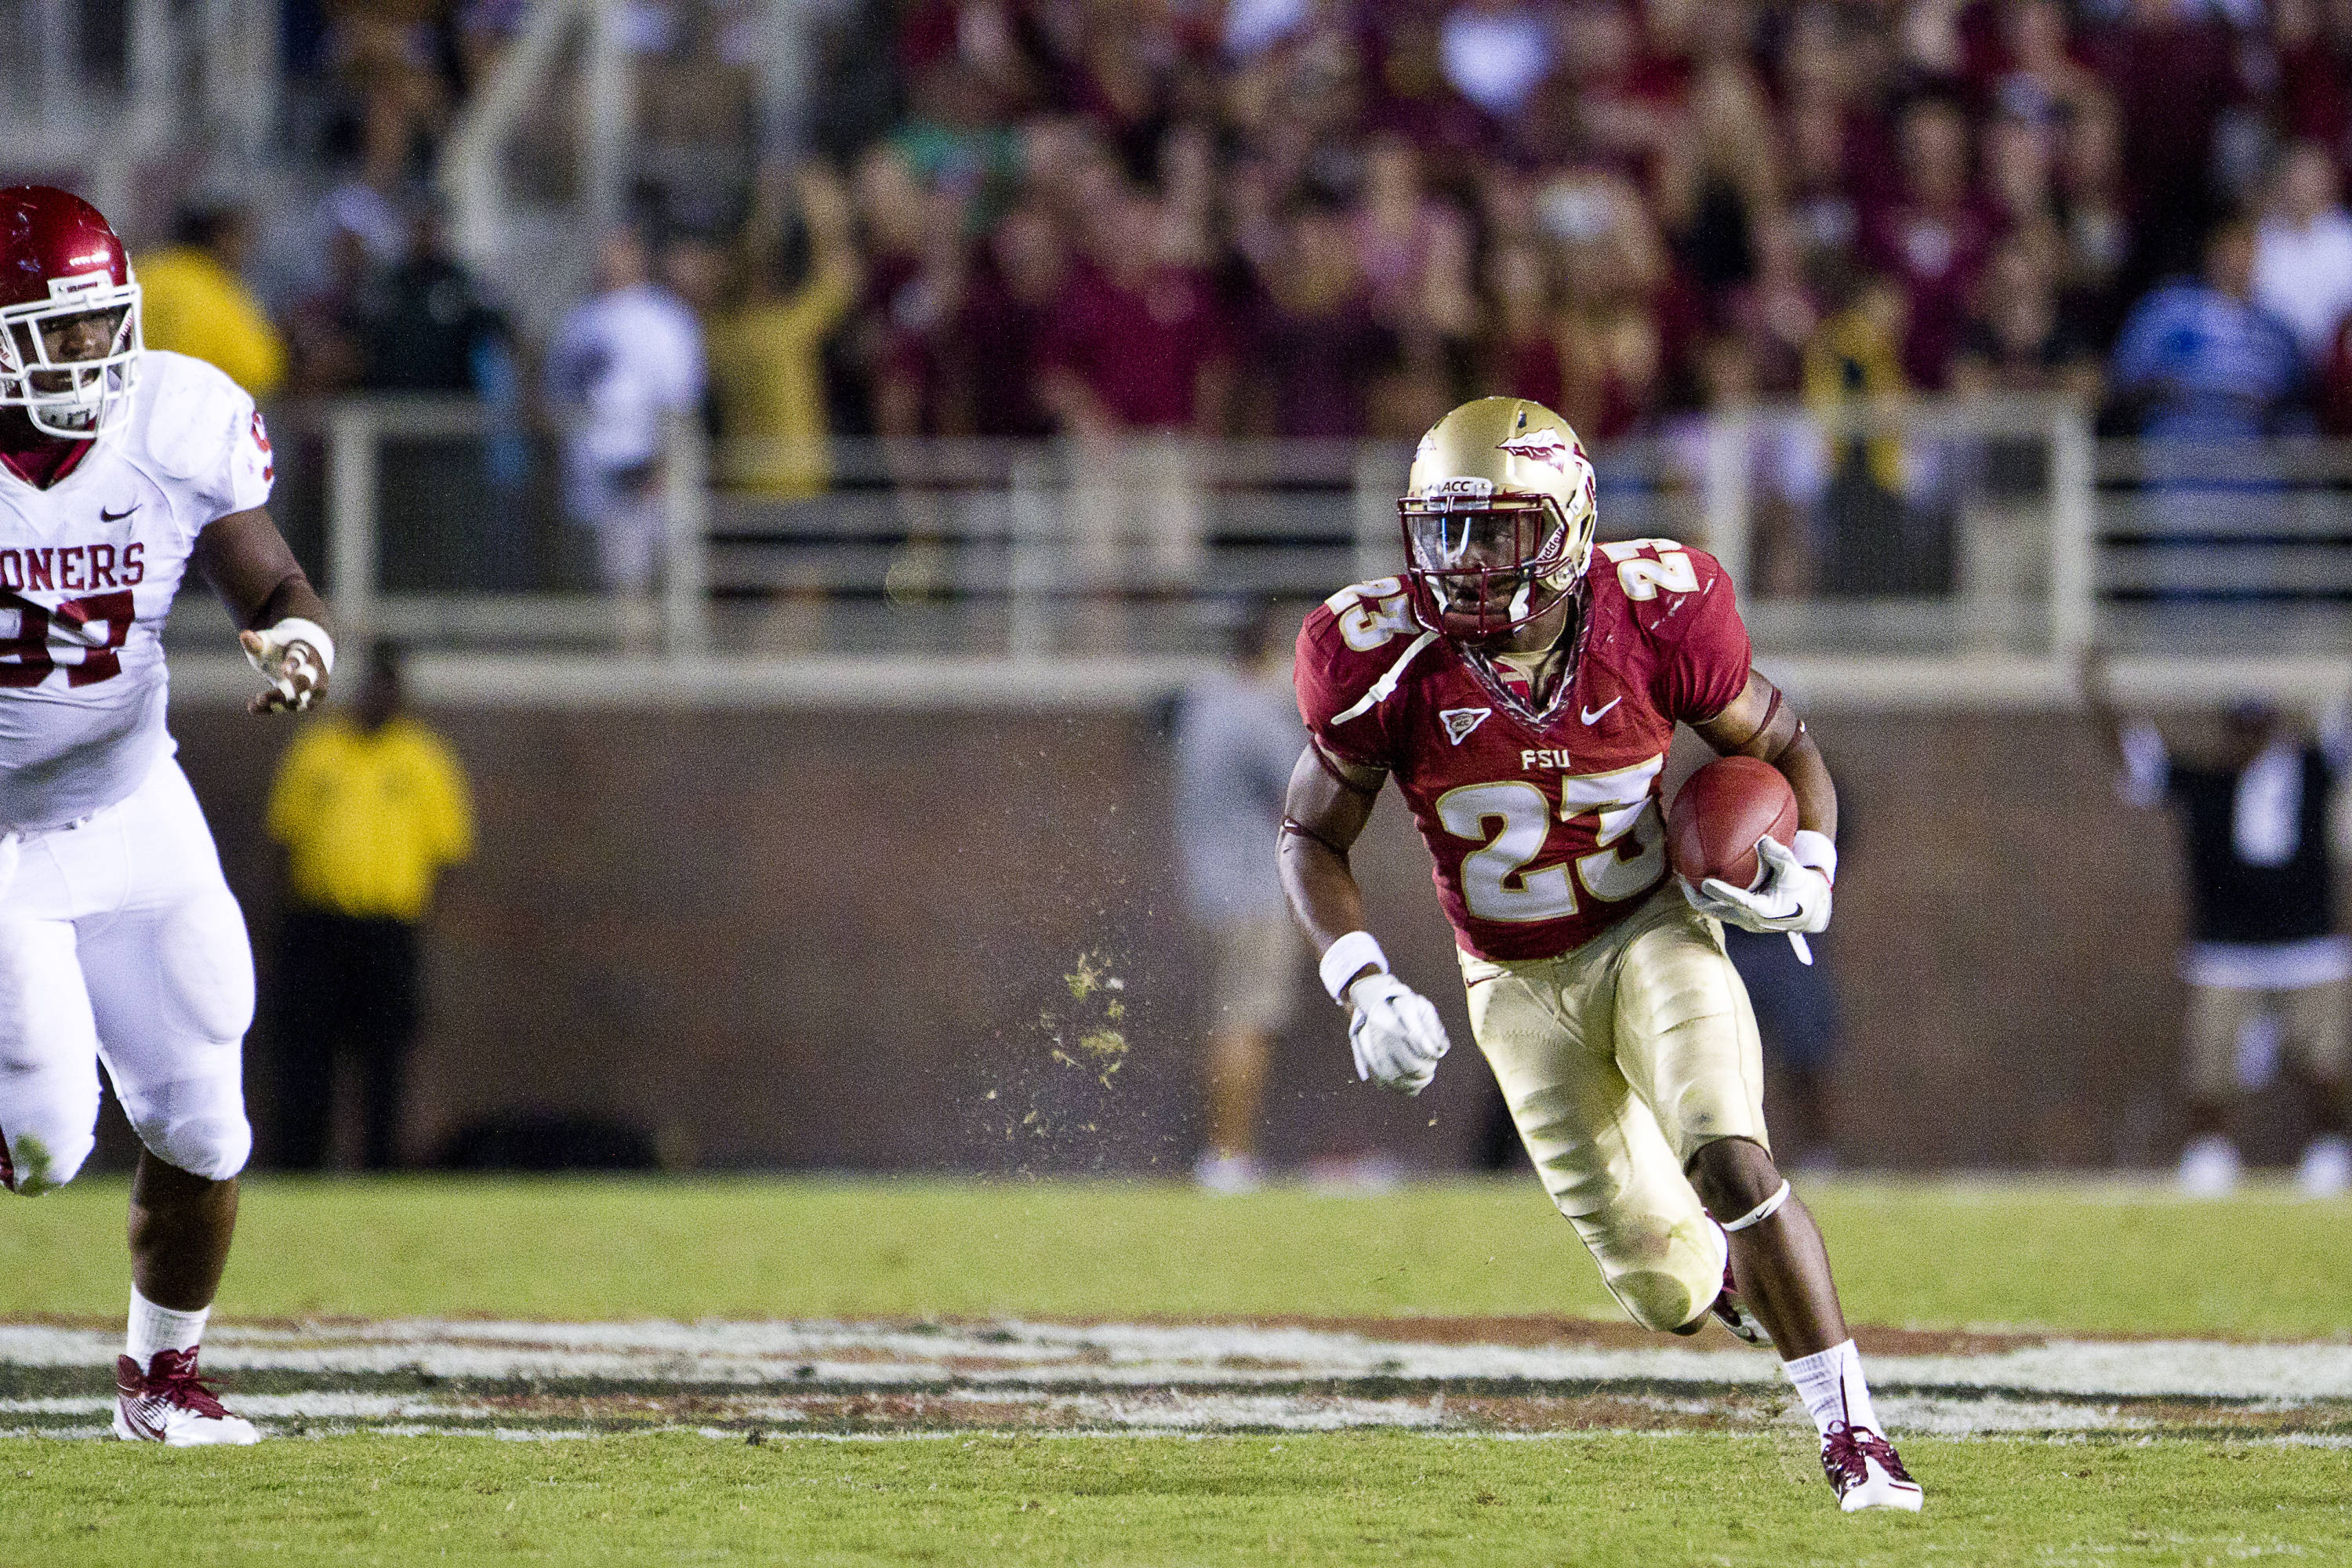 Chris Thompson (23) carries the ball downfield during the game against Oklahoma on September 17, 2011.